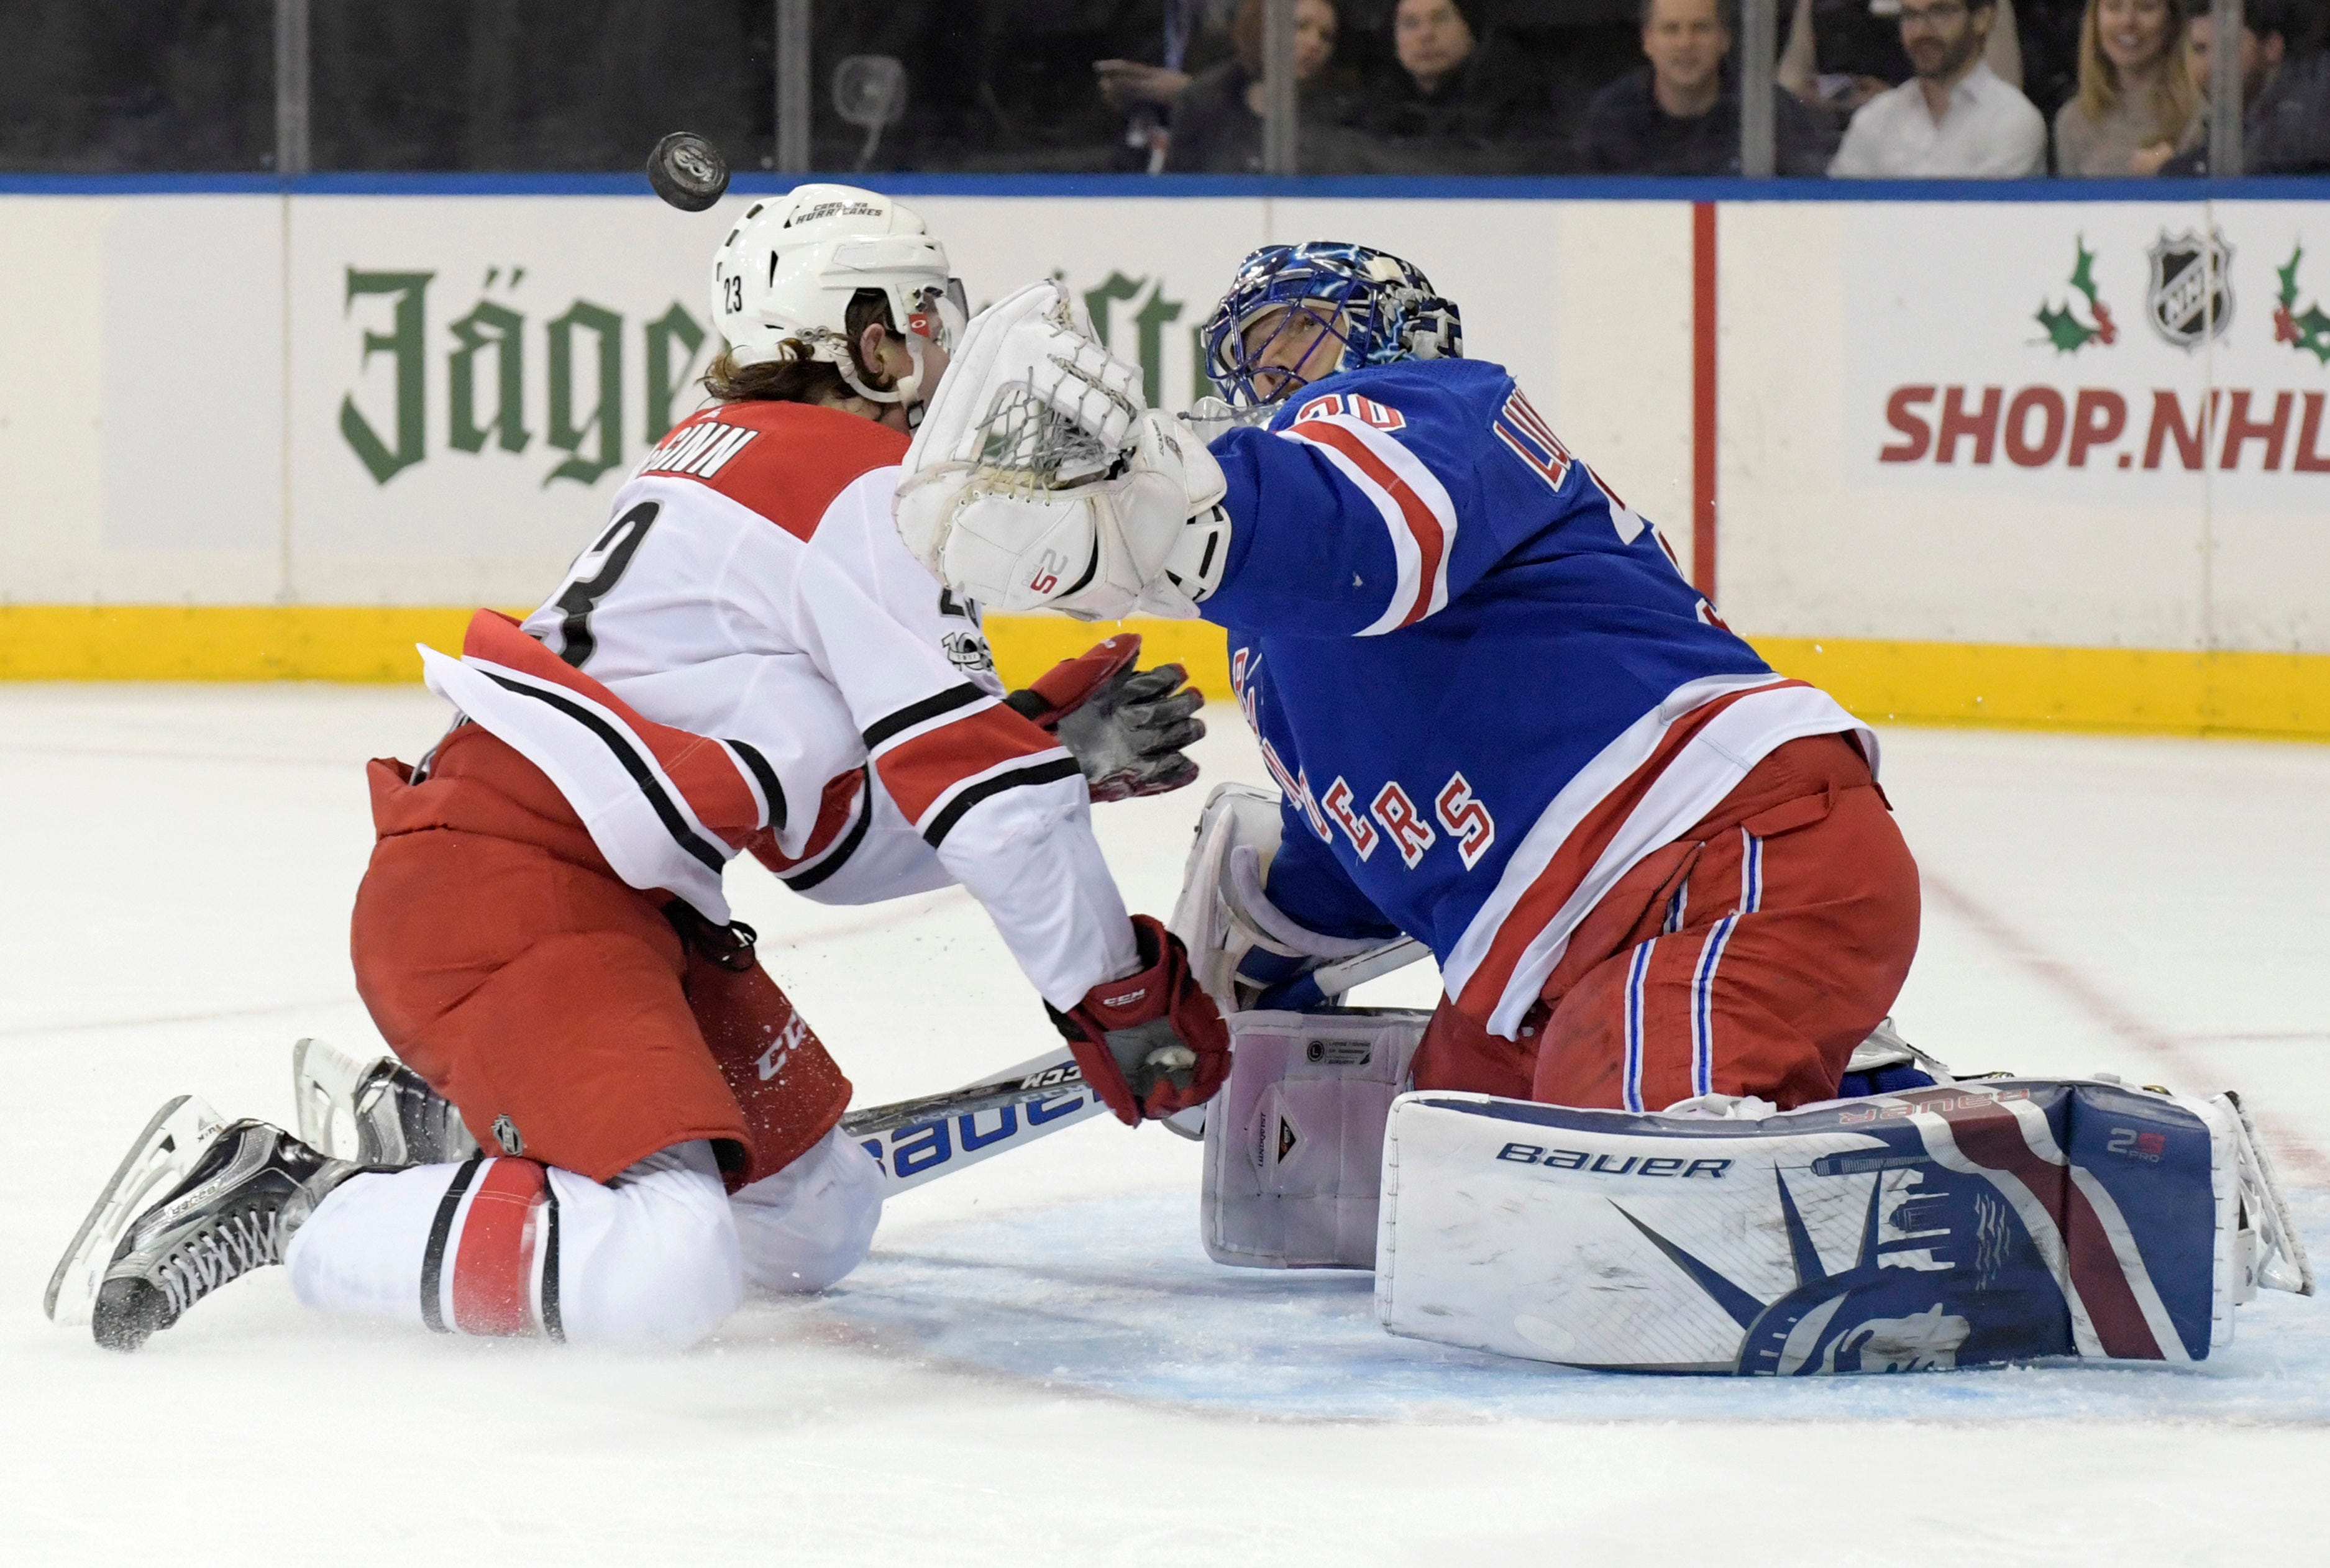 Grabner scores 3 to lead Rangers in 5-1 win over Hurricanes